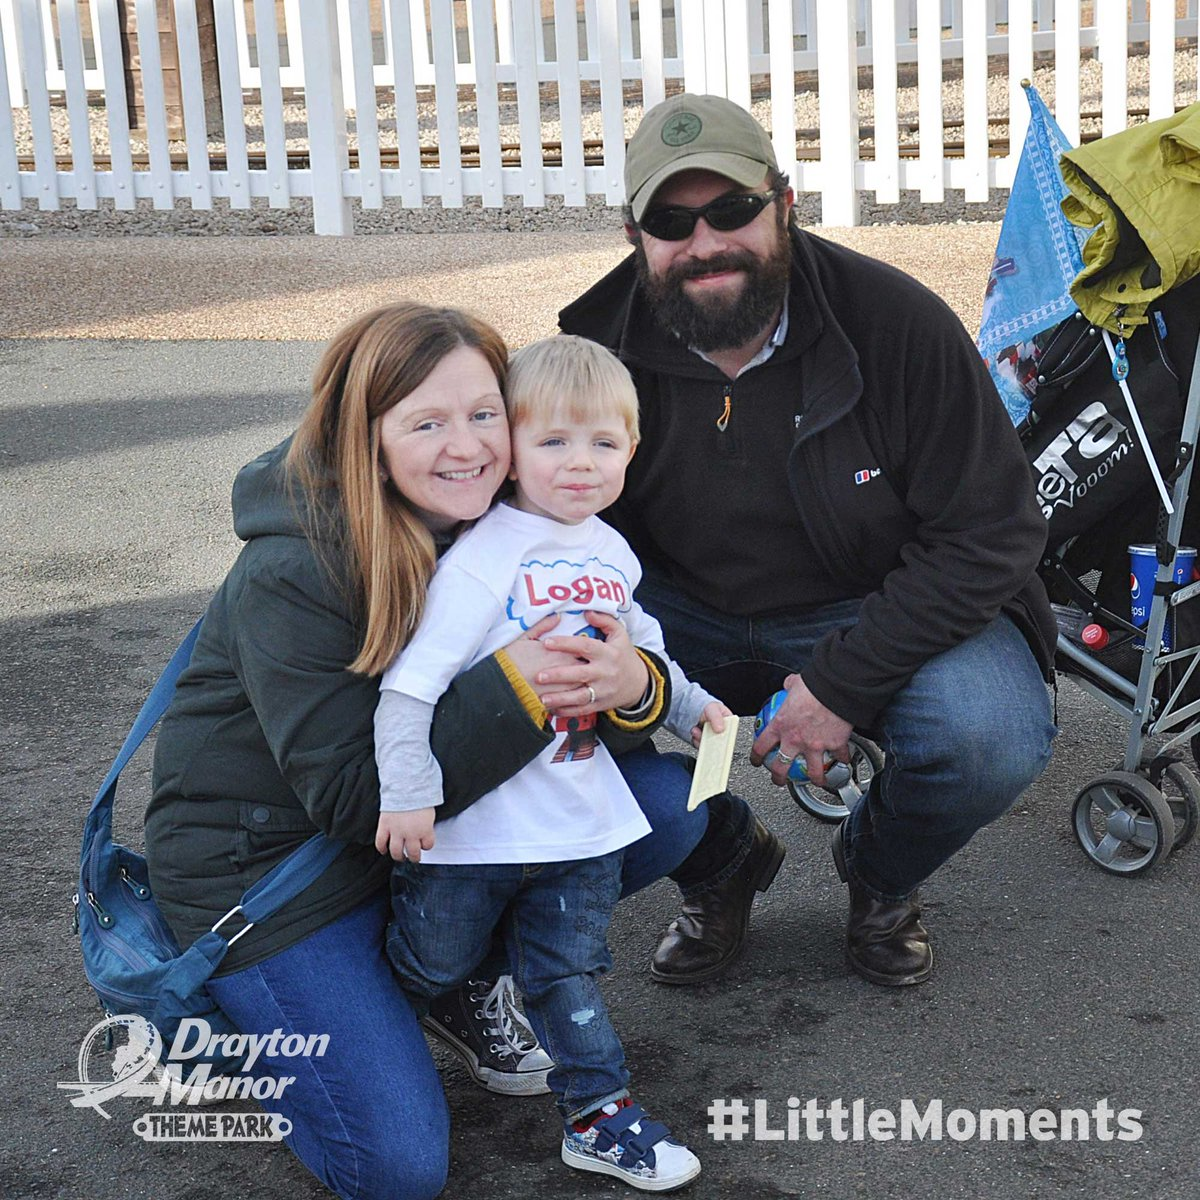 Are you visiting us for Thomas & Friends February Half Term? Don't forget to share your pictures with us by using the hashtag #LittleMoments http://socsi.in/TnlfS